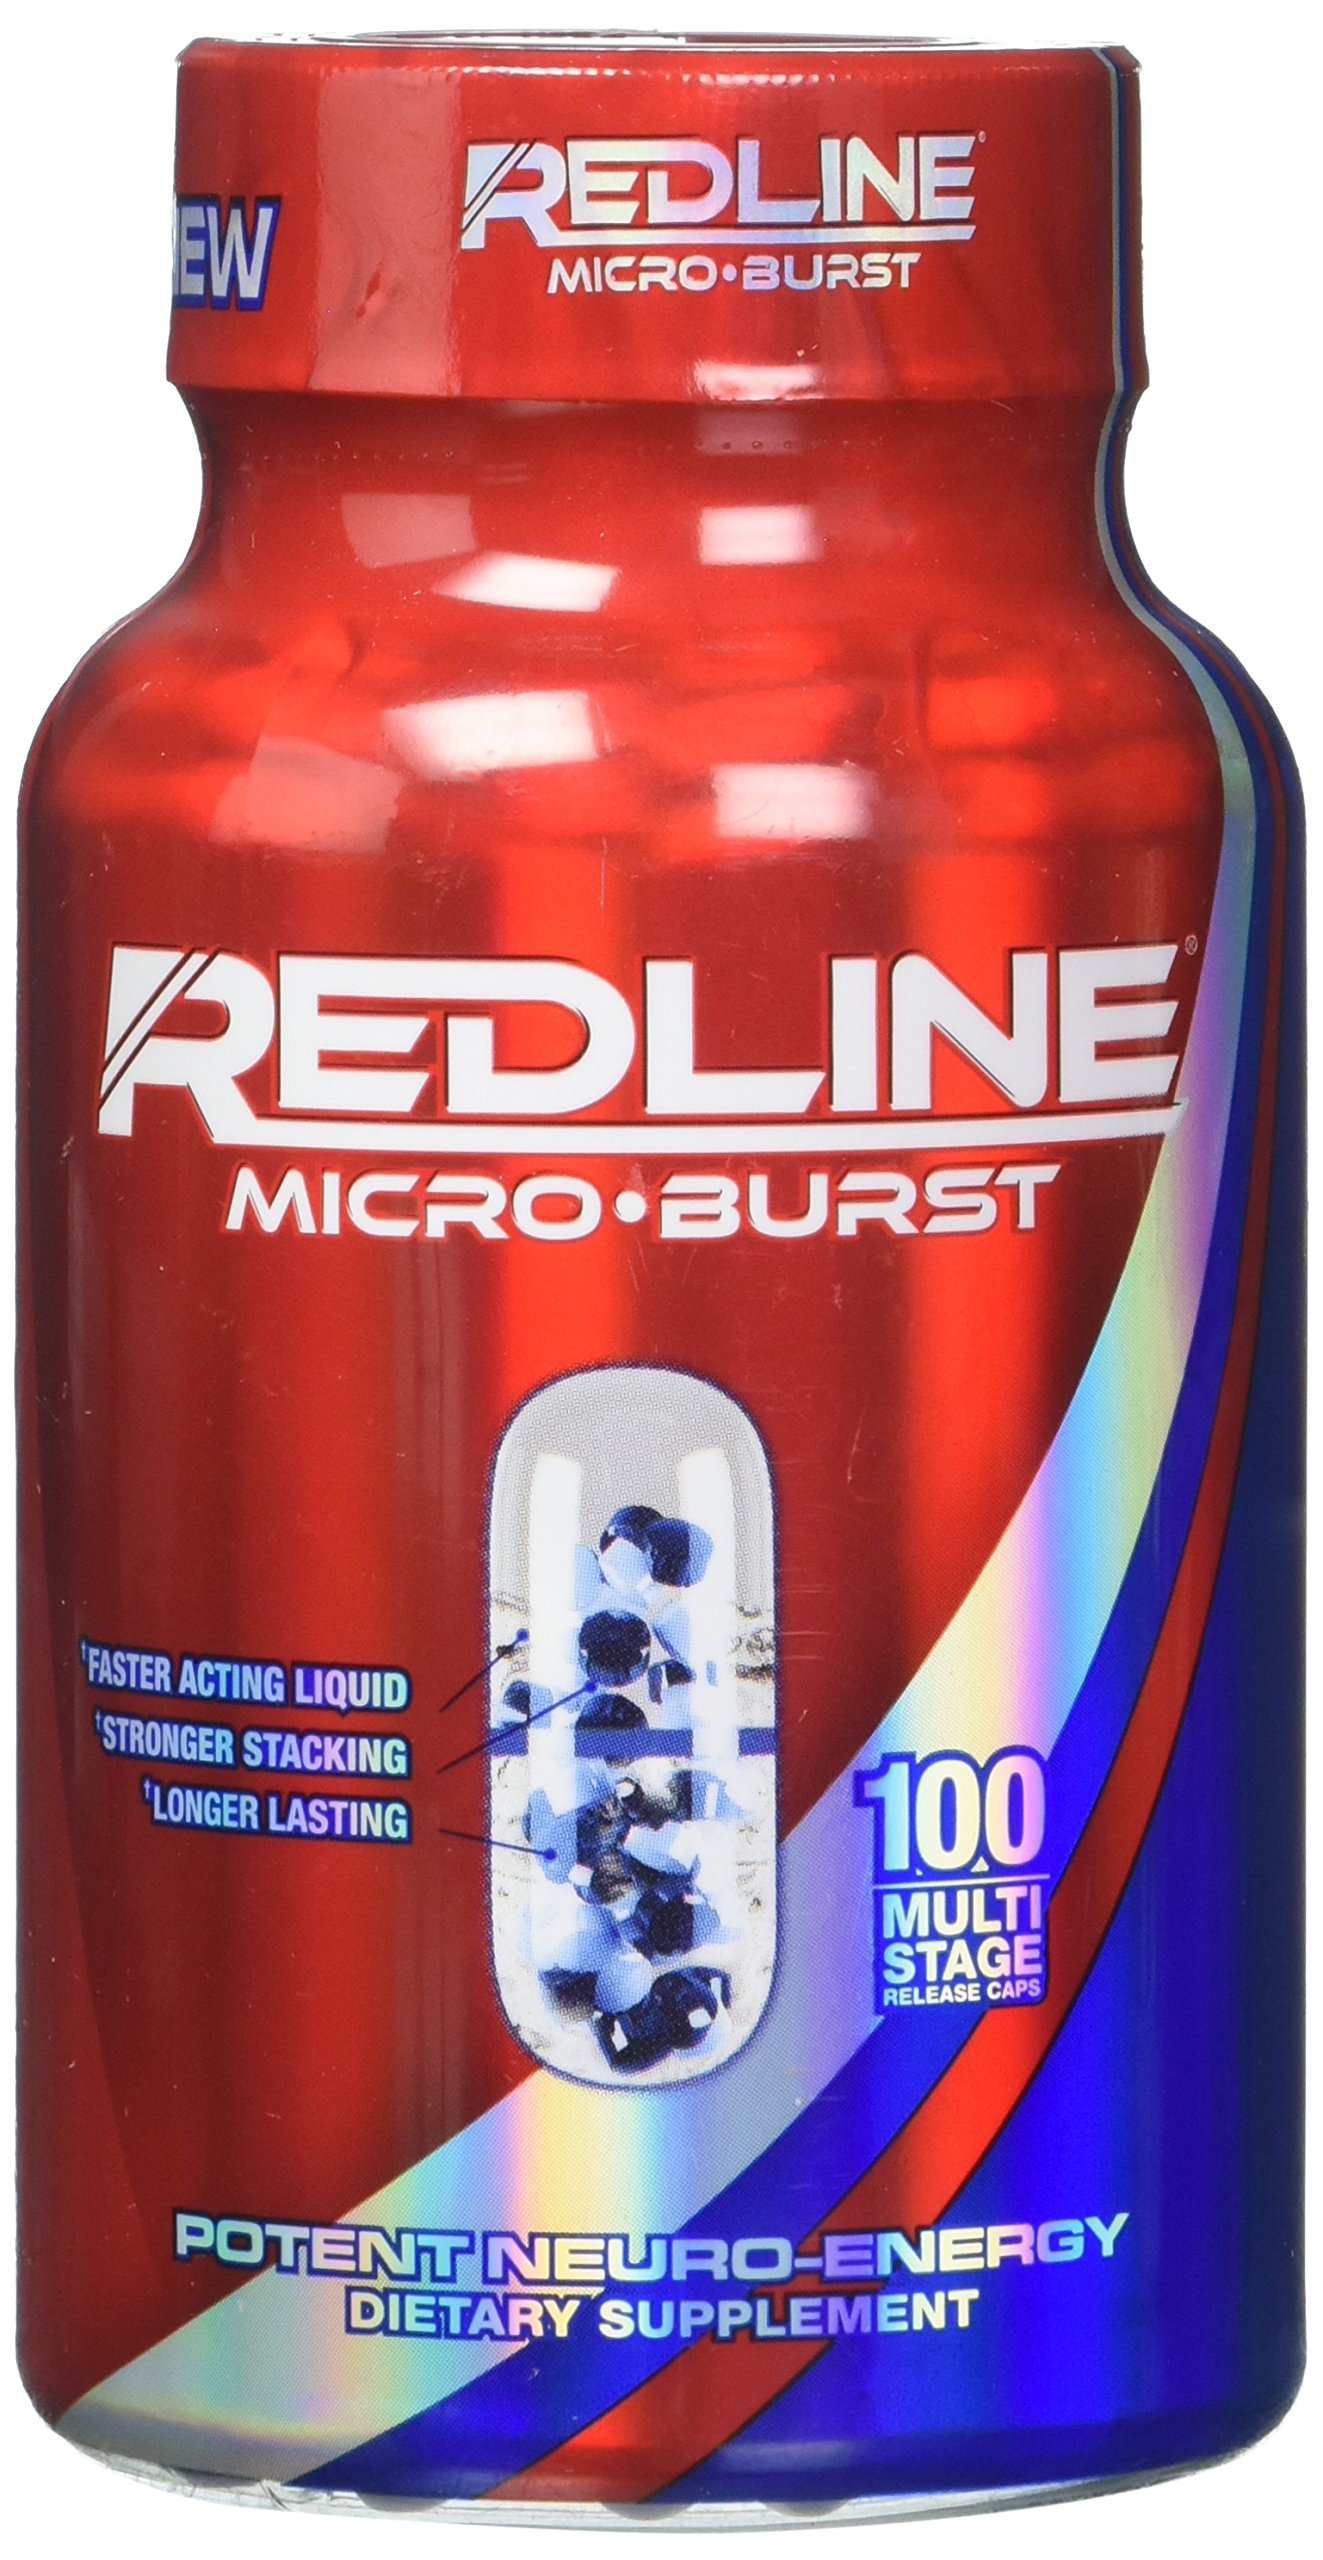 VPX Redline Microburst Multi-stage Delivery System Thermogenic Fat Burner, 100 Capsules by VPX